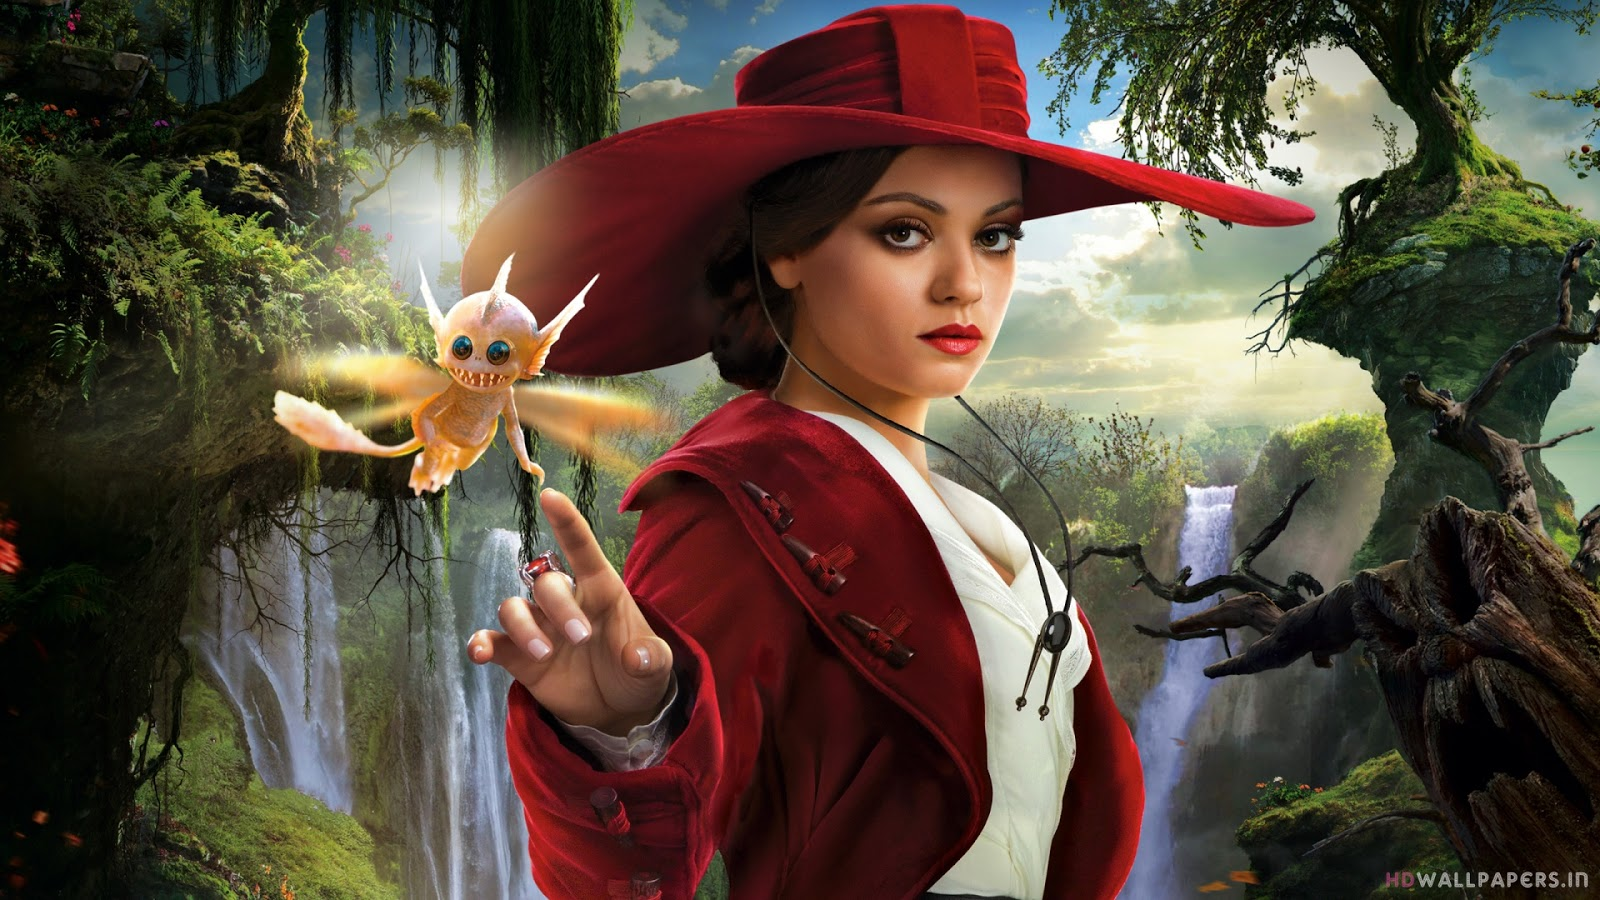 http://1.bp.blogspot.com/-tp86jSR3k74/UUmprfyu5NI/AAAAAAAAJLk/11GSa4AHCIw/s1600/mila_kunis_oz_the_great_and_powerful-1920x1080.jpg